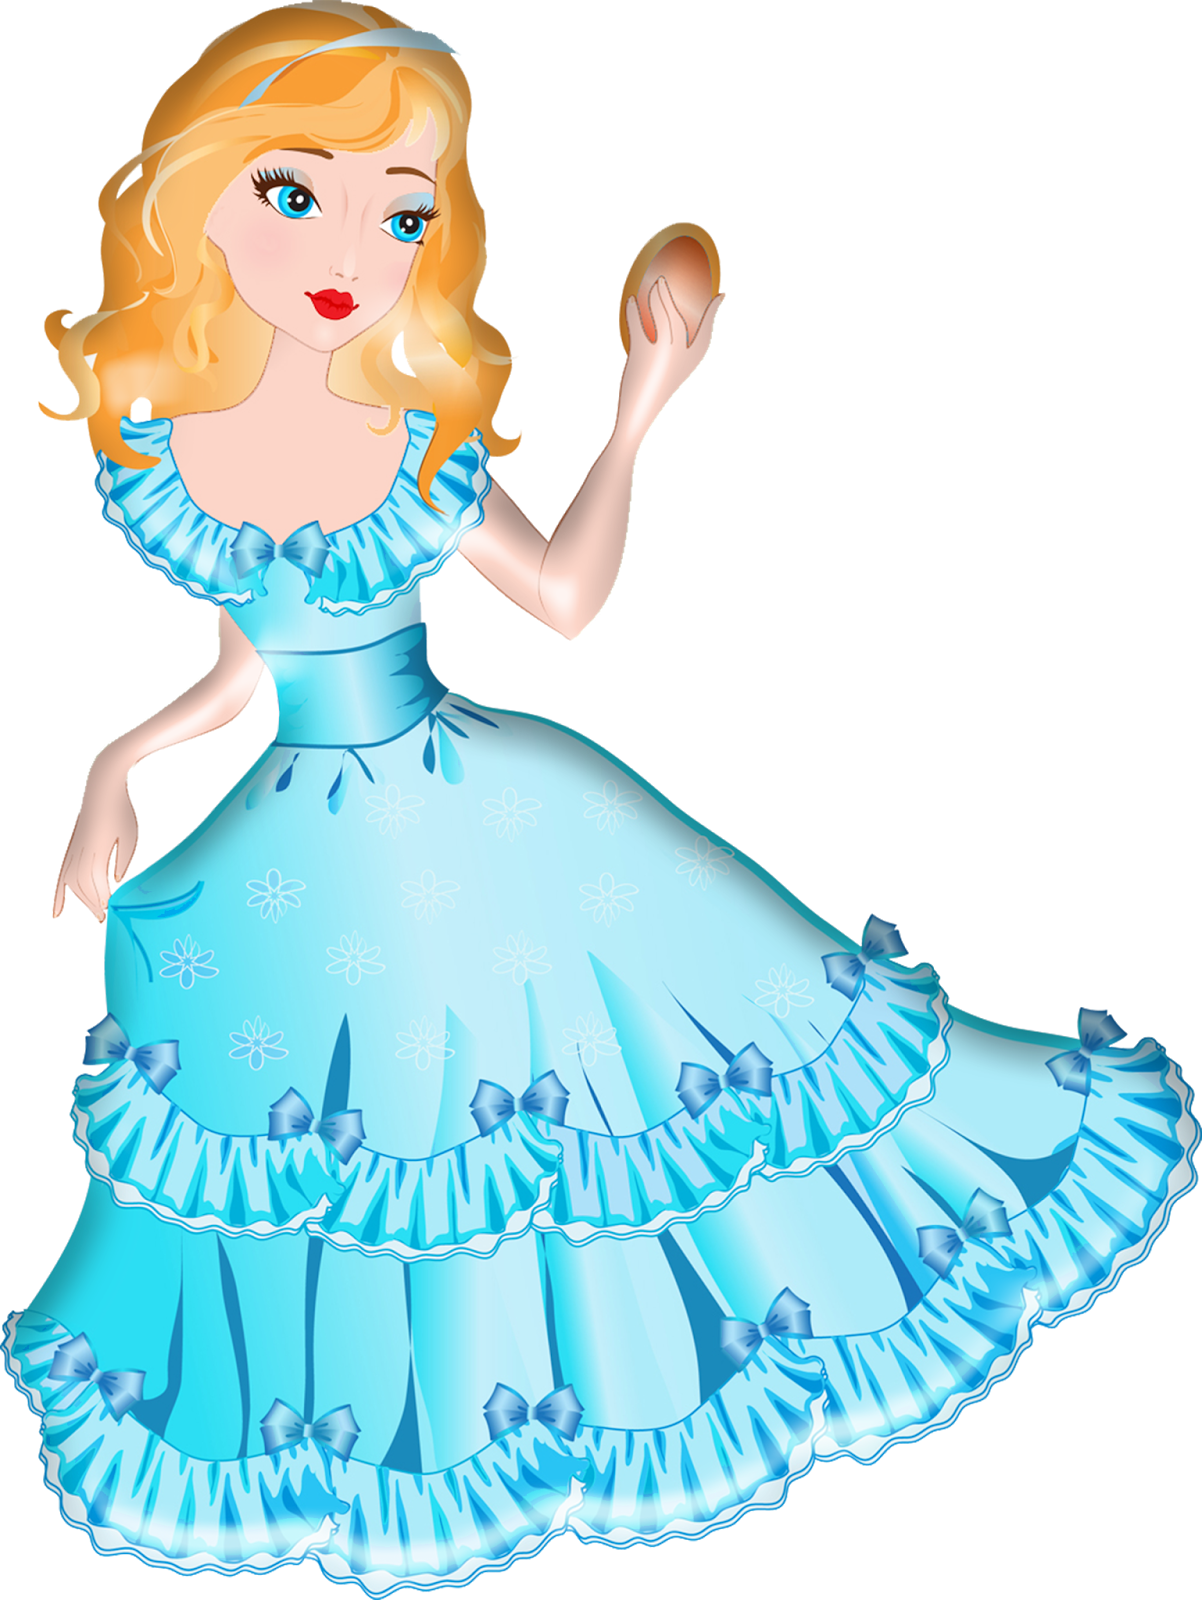 Princess and oh my. Coyote clipart fairytale